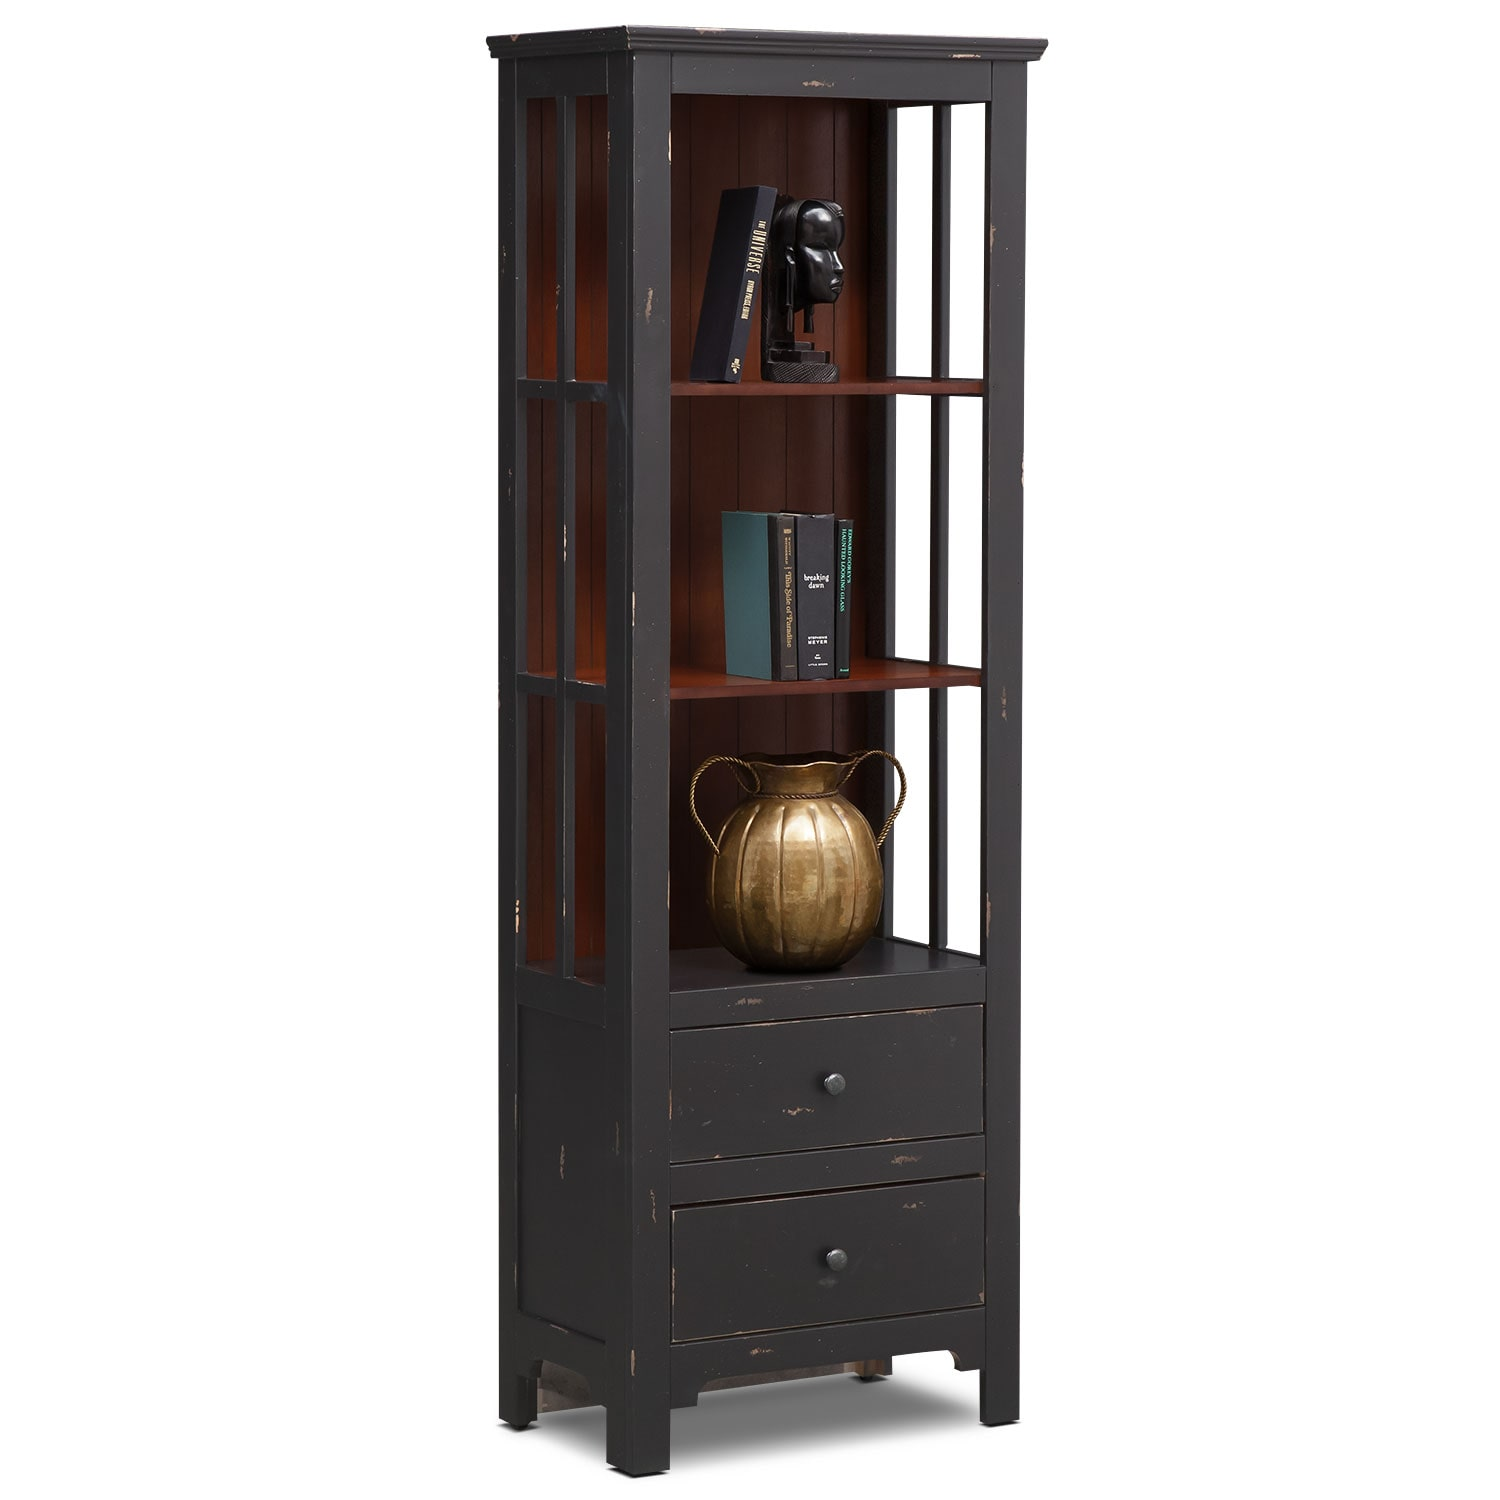 Bedroom Furniture - Keefe Bookcase - Black